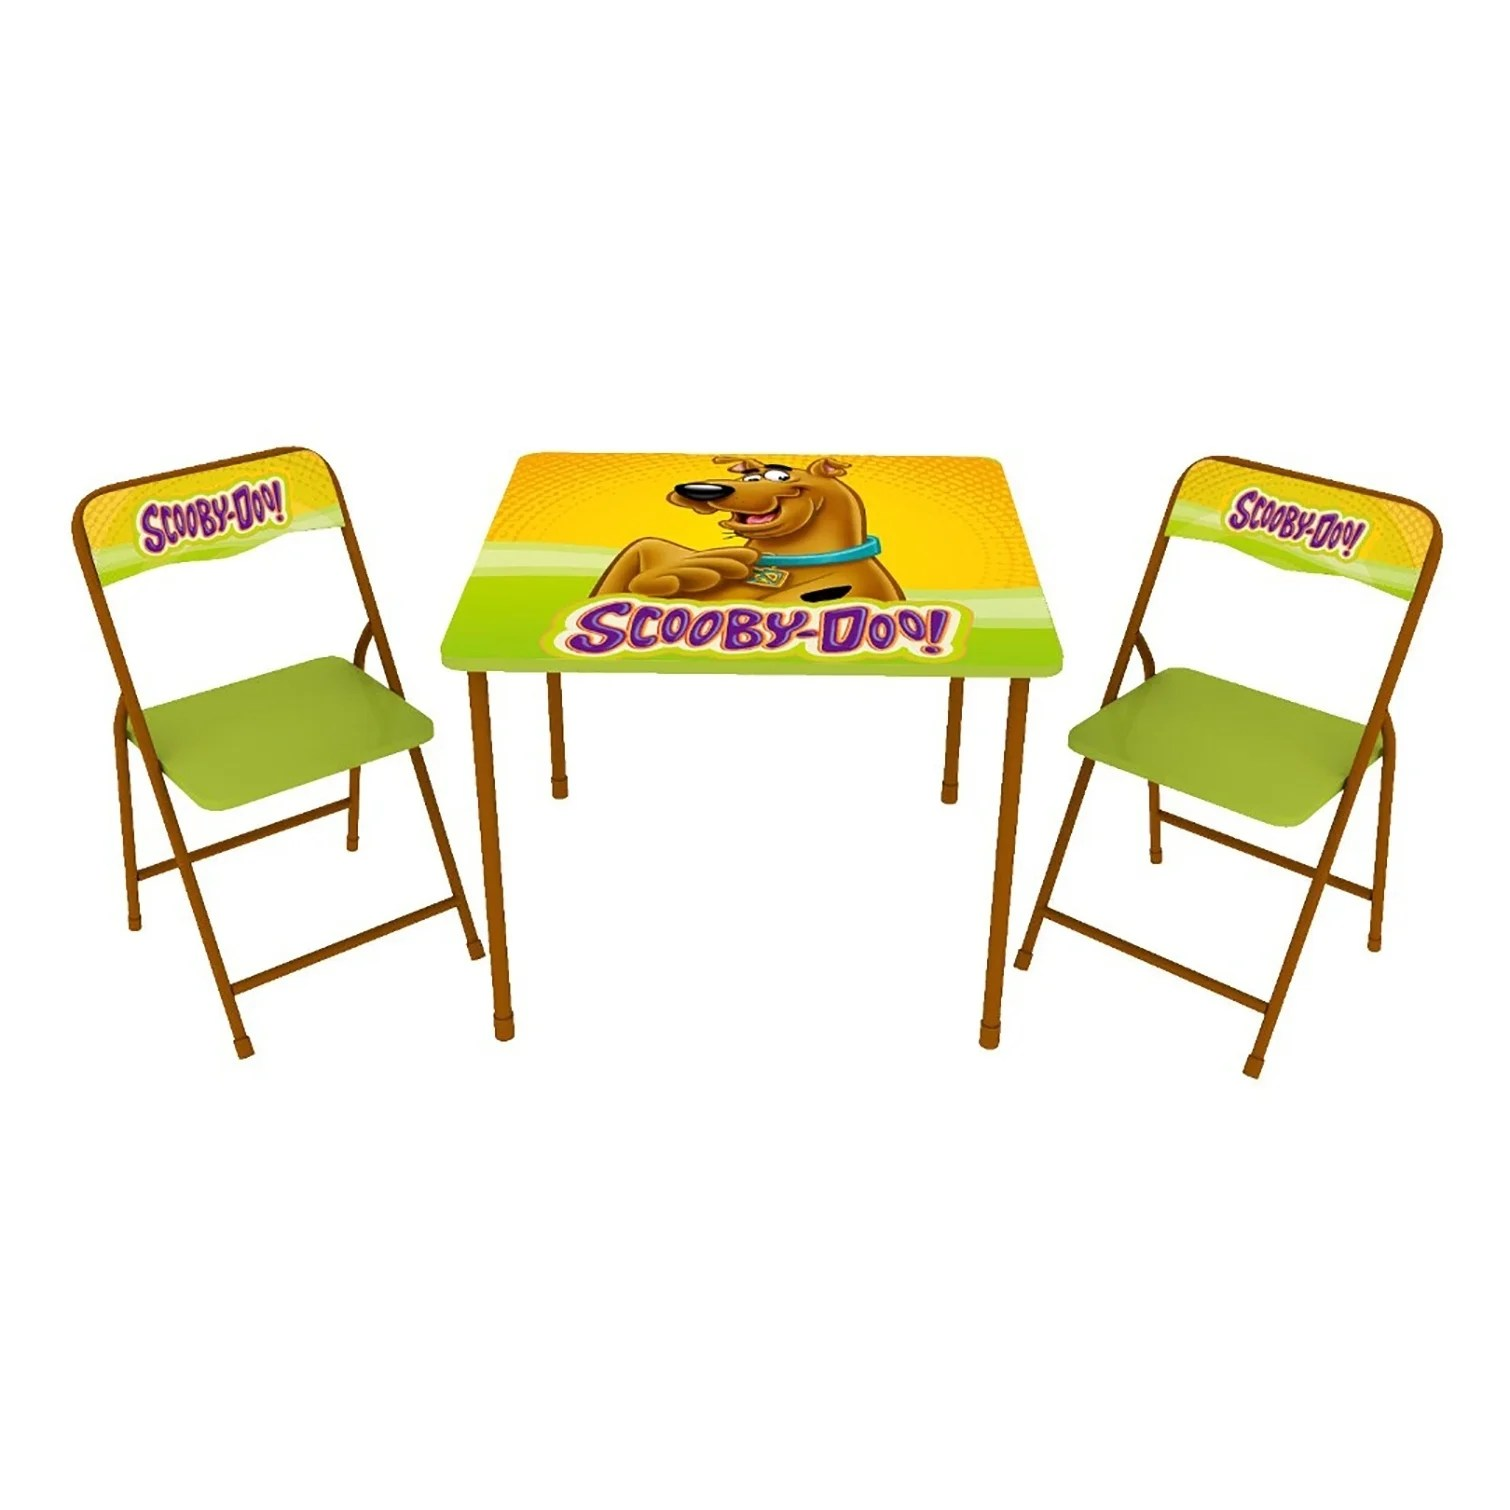 Childrens Folding Table And Chairs O Kids Scooby Doo 3 Piece Set Children S Metal Table And Chairs